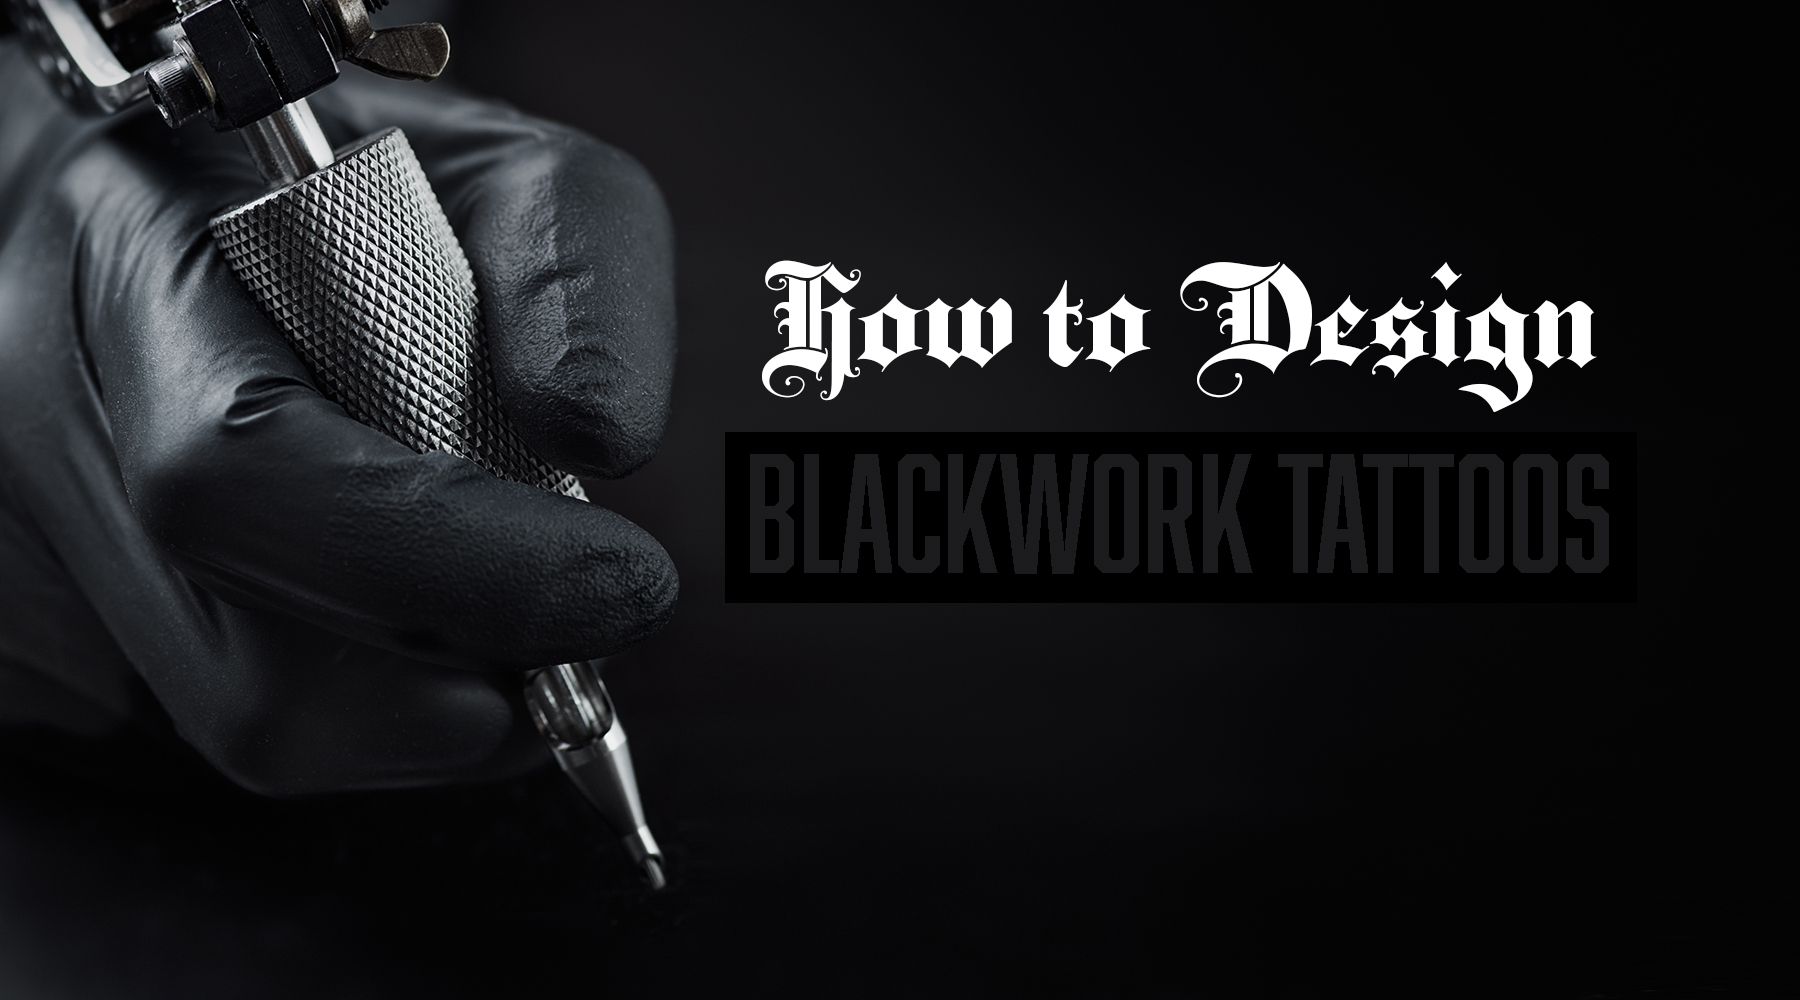 You're looking for a badass, no frills tattoo that will hold well and send a bold message – you might just be on the hunt for a blackwork tattoo. Blackwork is a general term for tattoos that use only ...